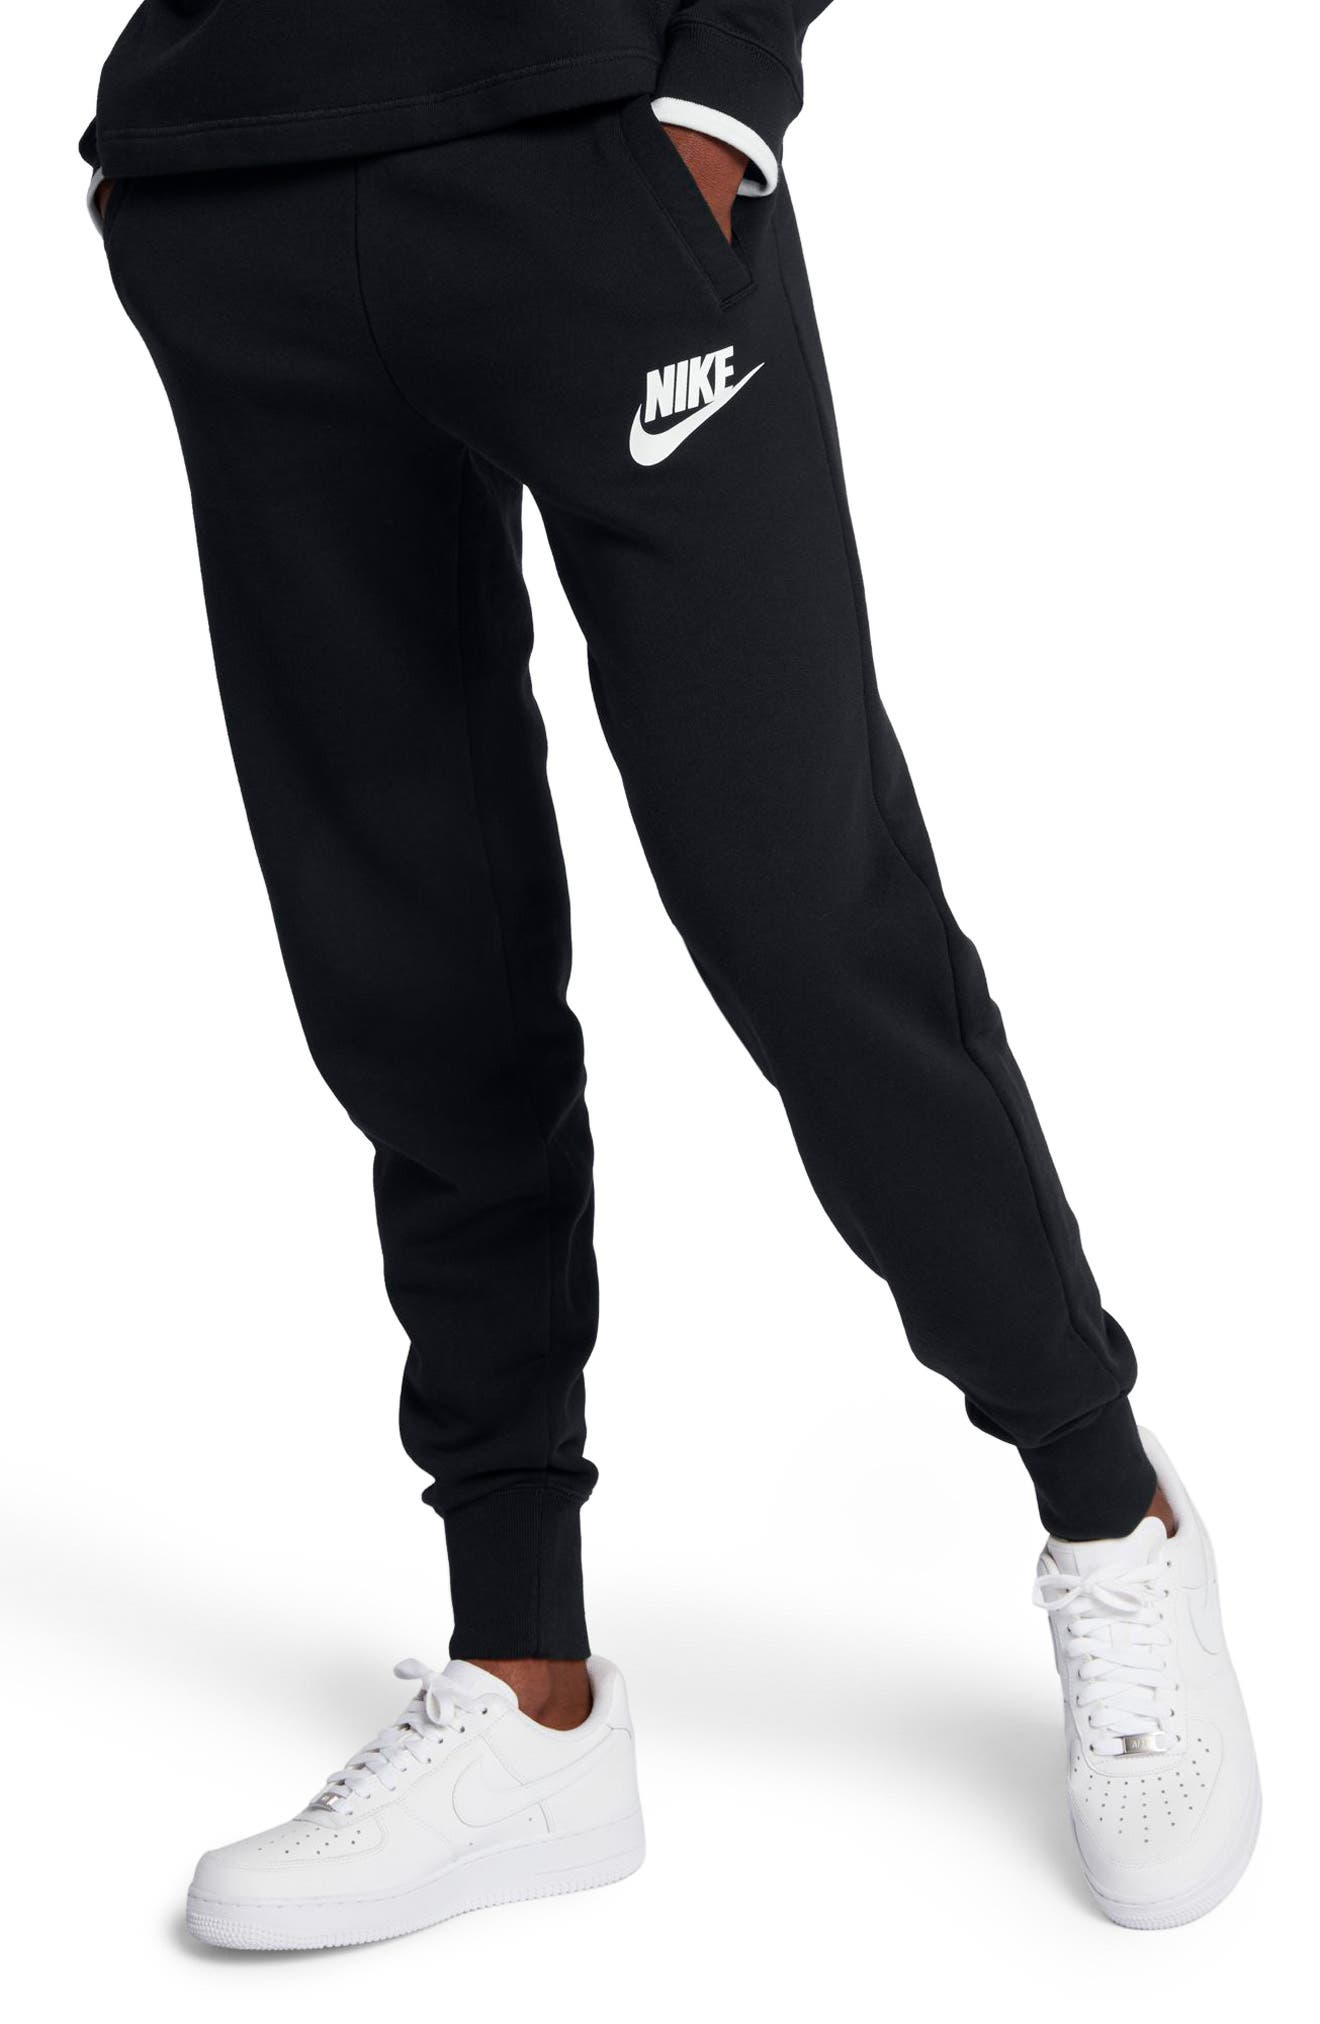 Sportswear Rally Fleece Pants,                             Alternate thumbnail 3, color,                             Black/ Black/ White